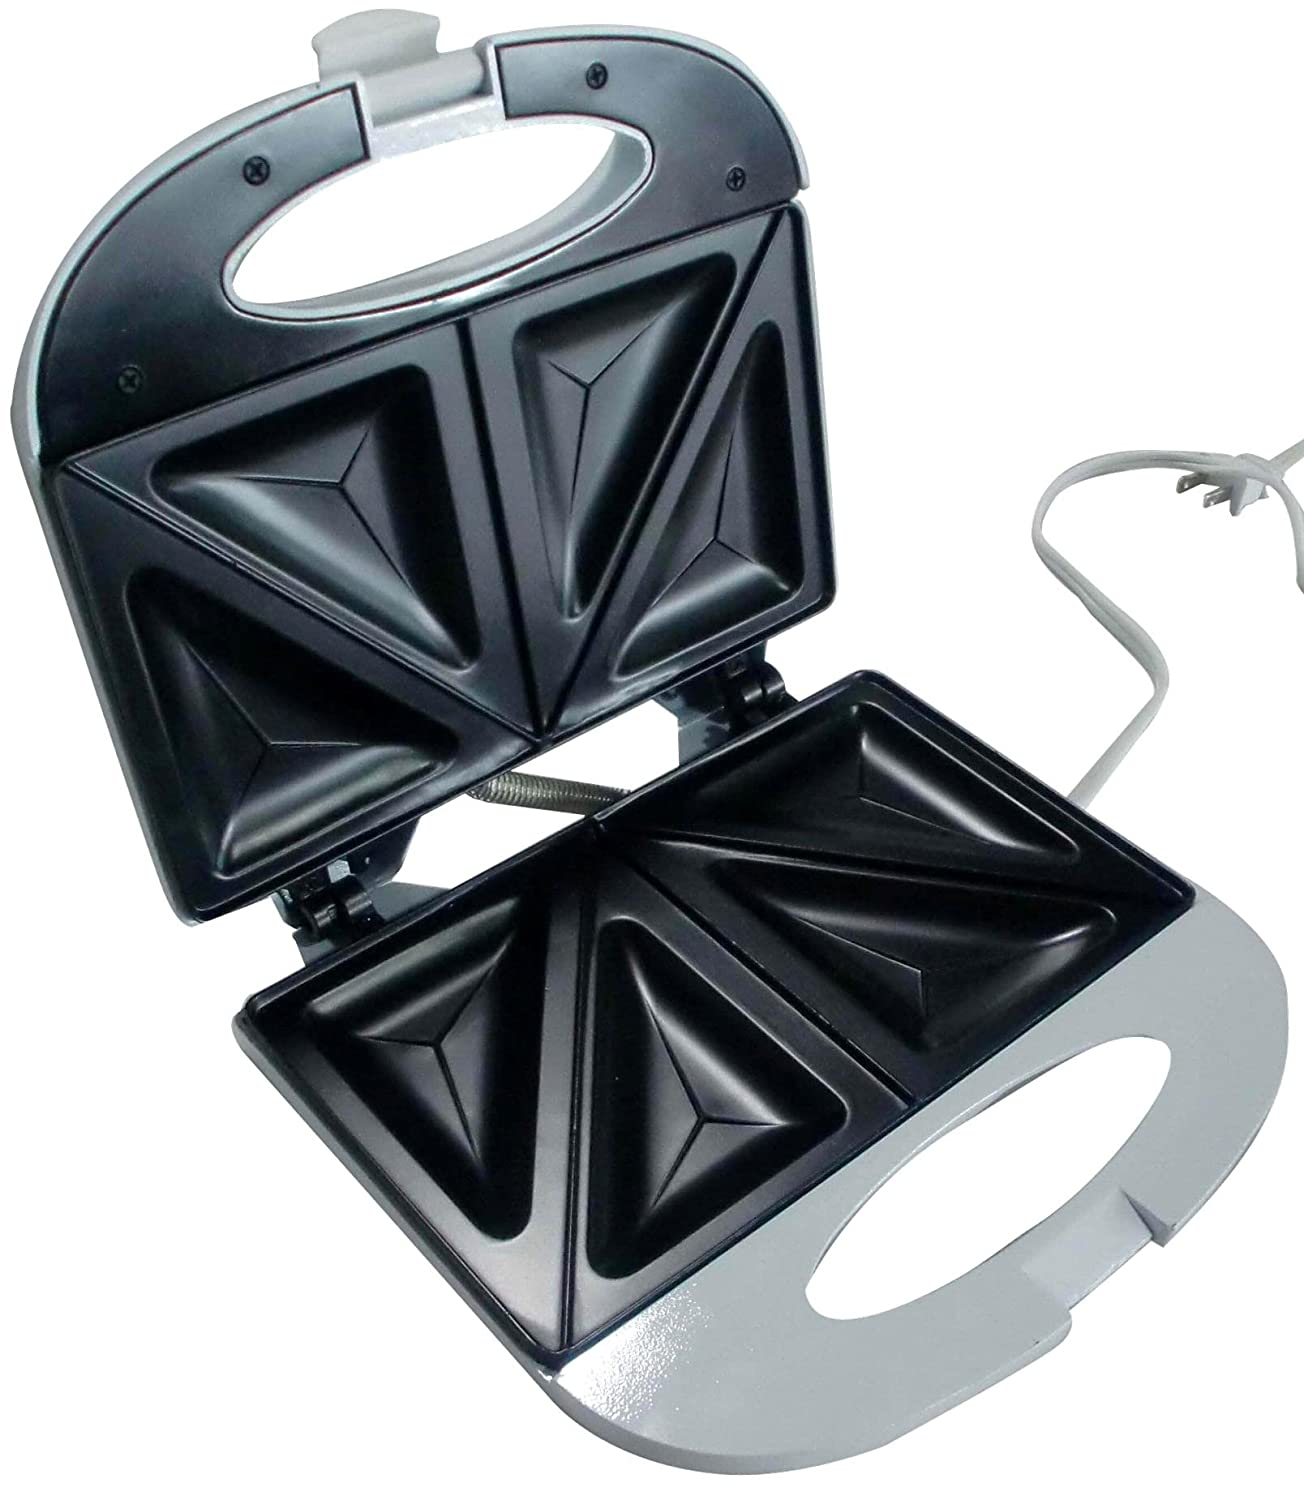 BC Classics BC-98868 Sandwich Maker MBR INDUSTRIES